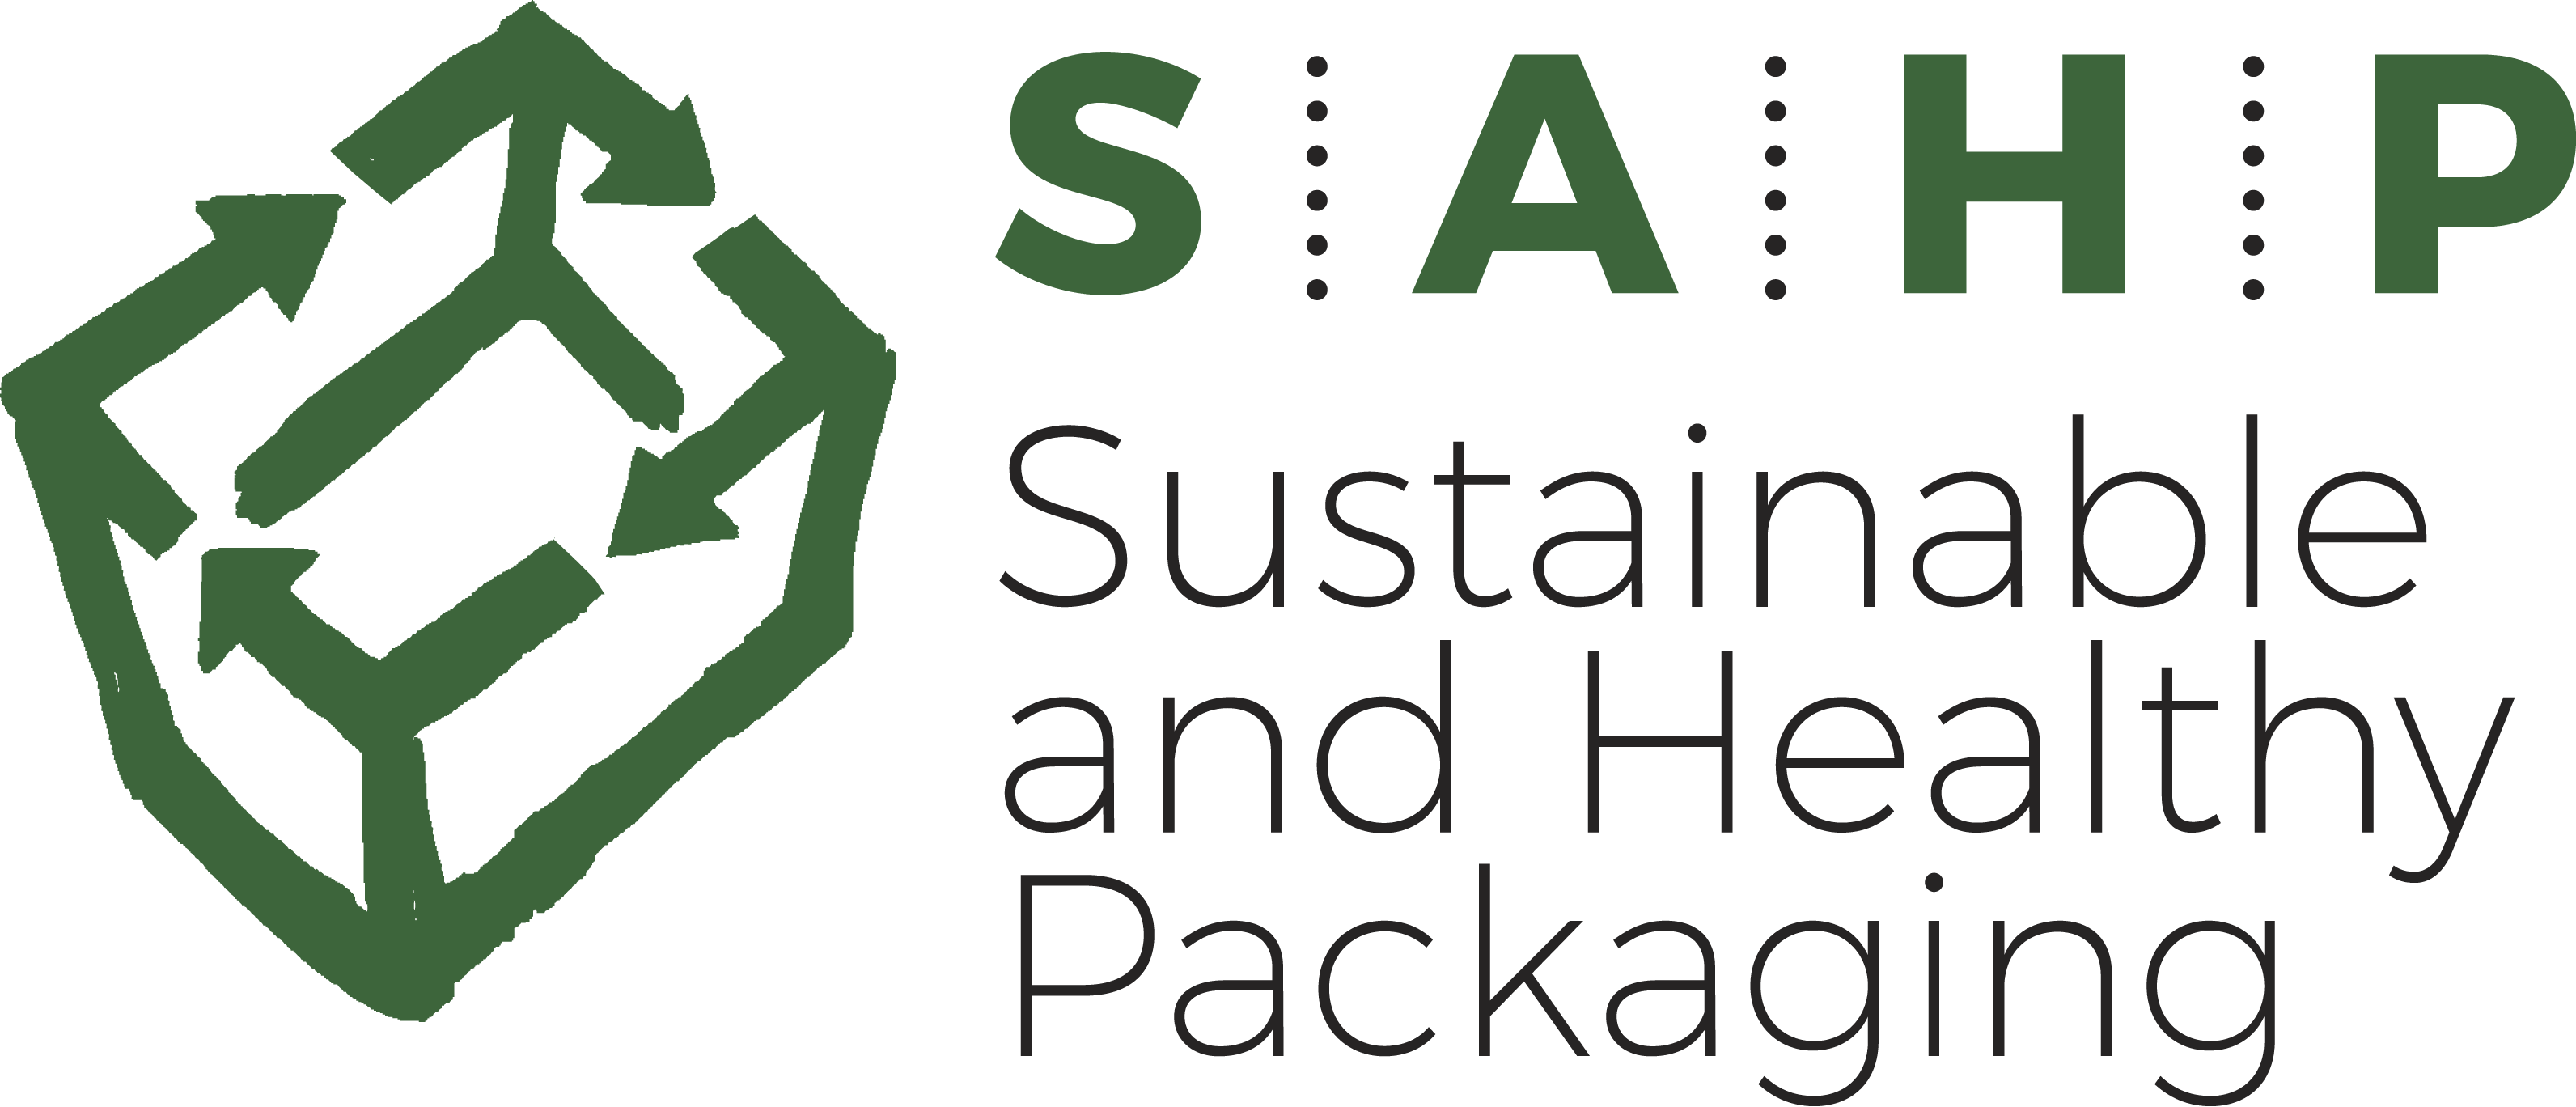 SAHP (Sustainable and Healthy Packaging)